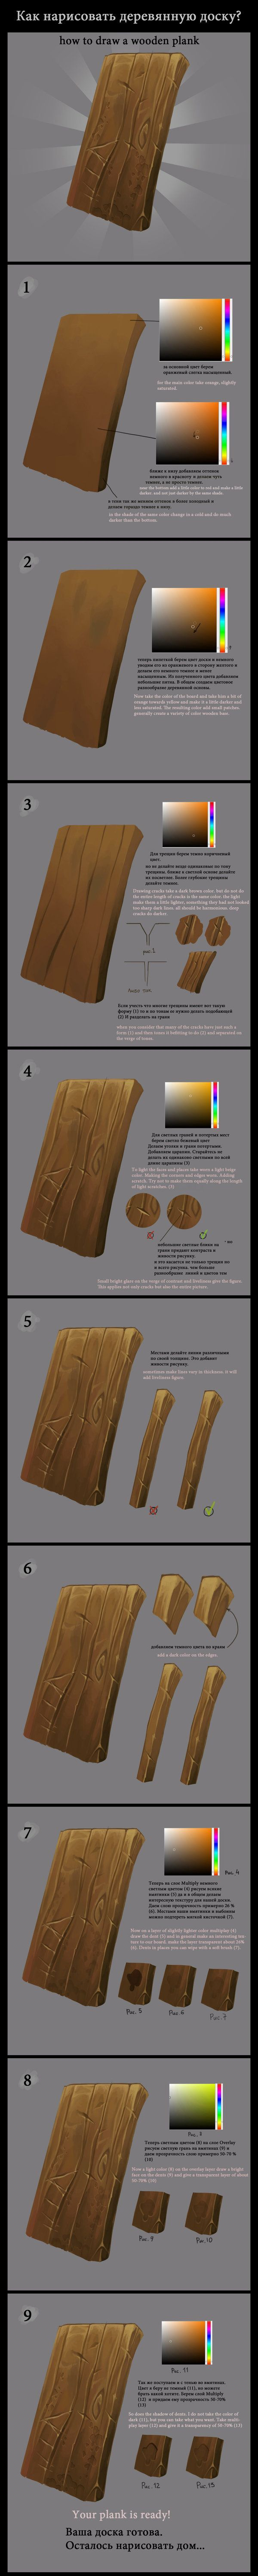 How to draw wooden plank? by Gimaldinov | Create your own roleplaying game books w/ RPG Bard: www.rpgbard.com | Pathfinder PFRPG Dungeons and Dragons ADND DND OGL d20 OSR OSRIC Warhammer 40000 40k Fantasy Roleplay WFRP Star Wars Exalted World of Darkness Dragon Age Iron Kingdoms Fate Core System Savage Worlds Shadowrun Dungeon Crawl Classics DCC Call of Cthulhu CoC Basic Role Playing BRP Traveller Battletech The One Ring TOR fantasy science fiction horror